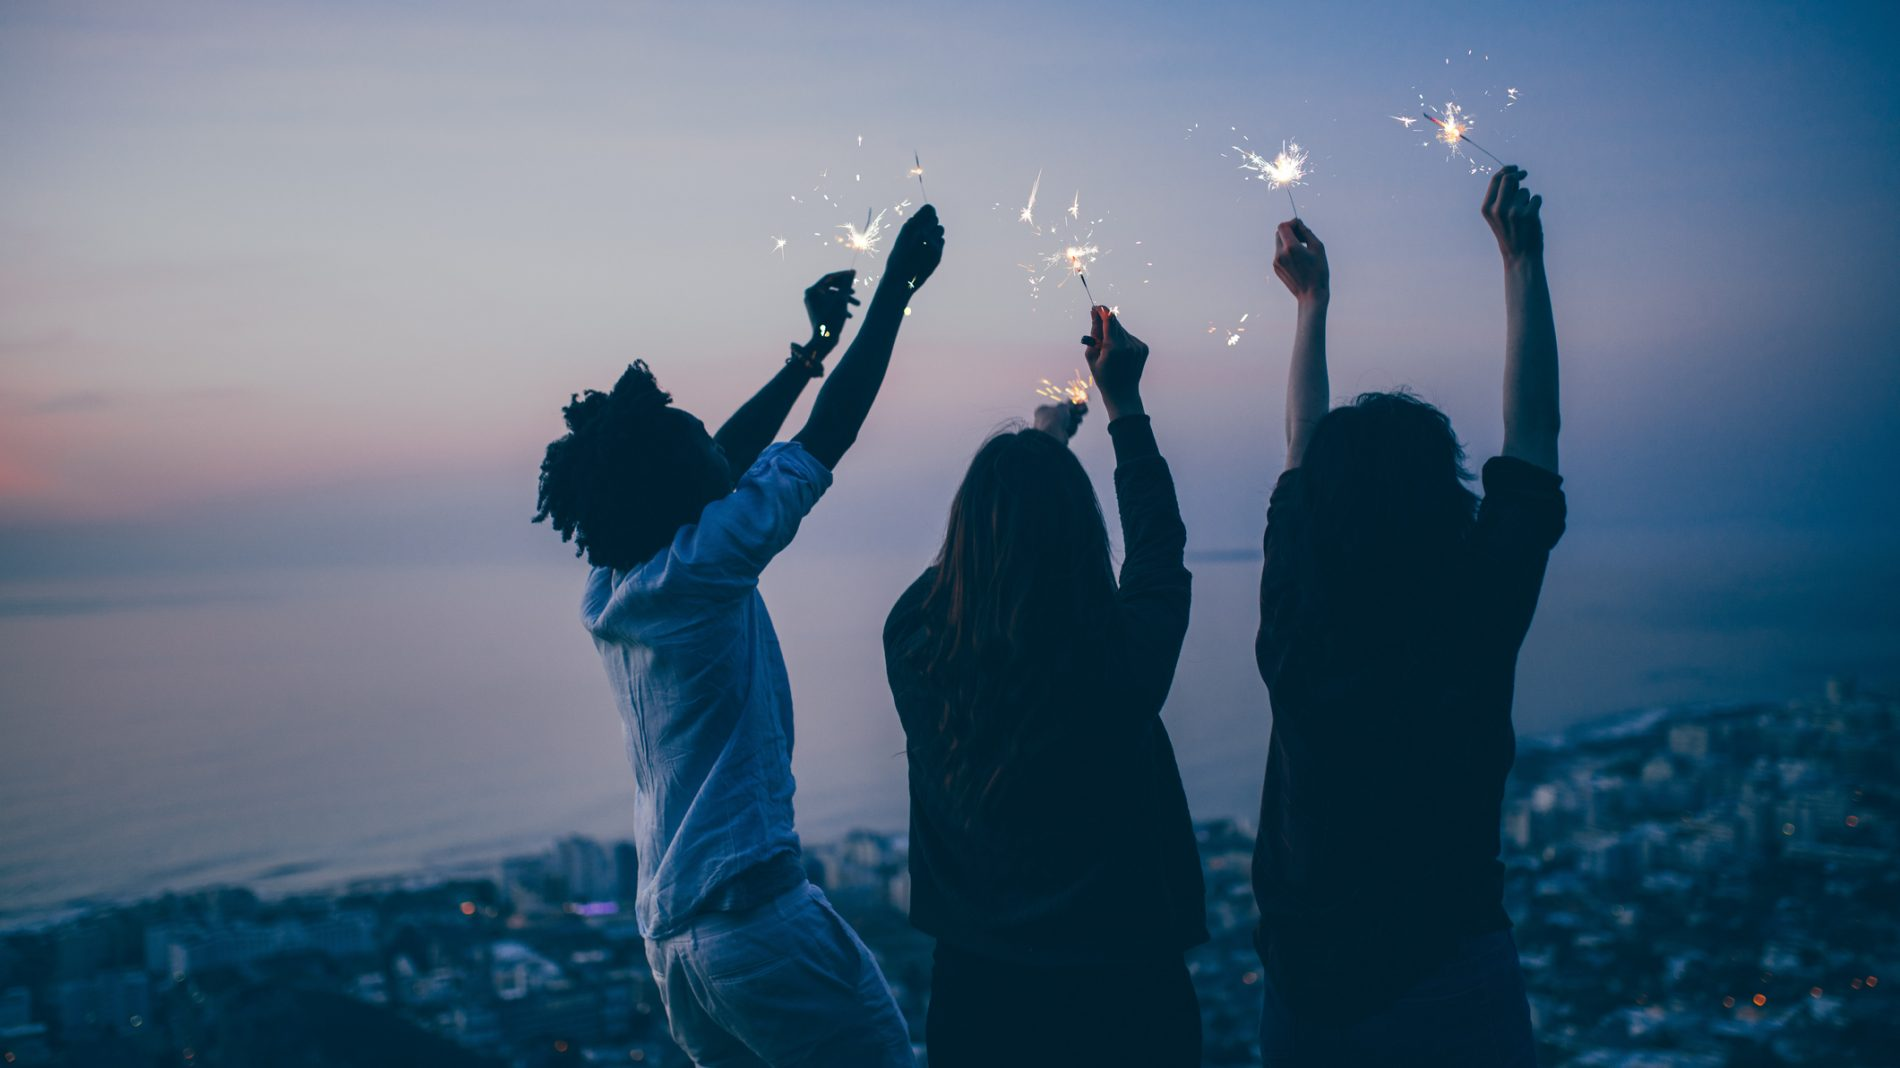 Group of young adult friends celebrate with sparklers at night